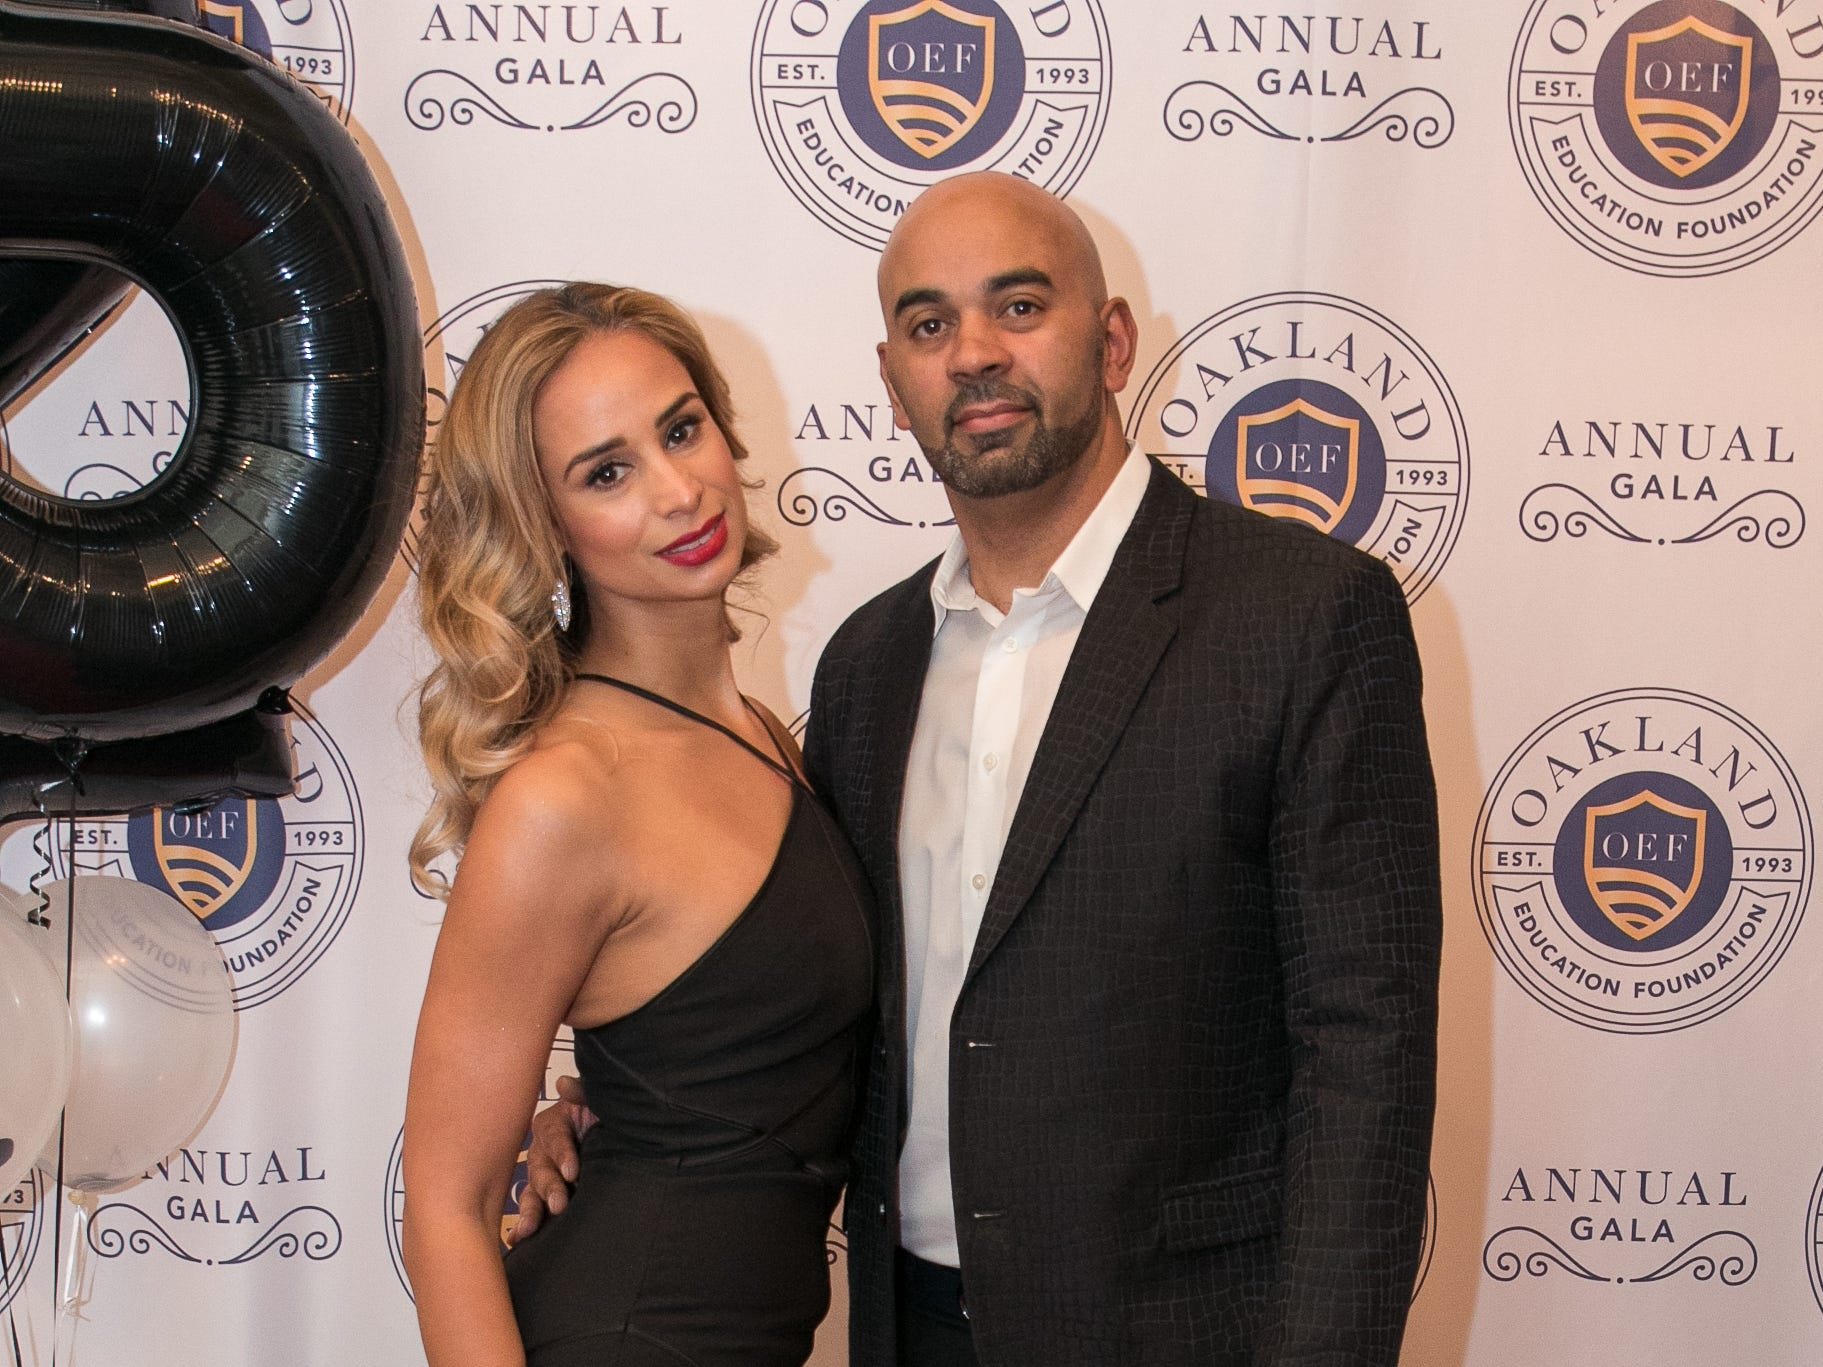 Claudia and Julio Luna/Perez. The Oakland Education Foundation held their 25th Anniversary Casino Night Gala at Preakness Hills Country Club in Wayne. 03/16/2019